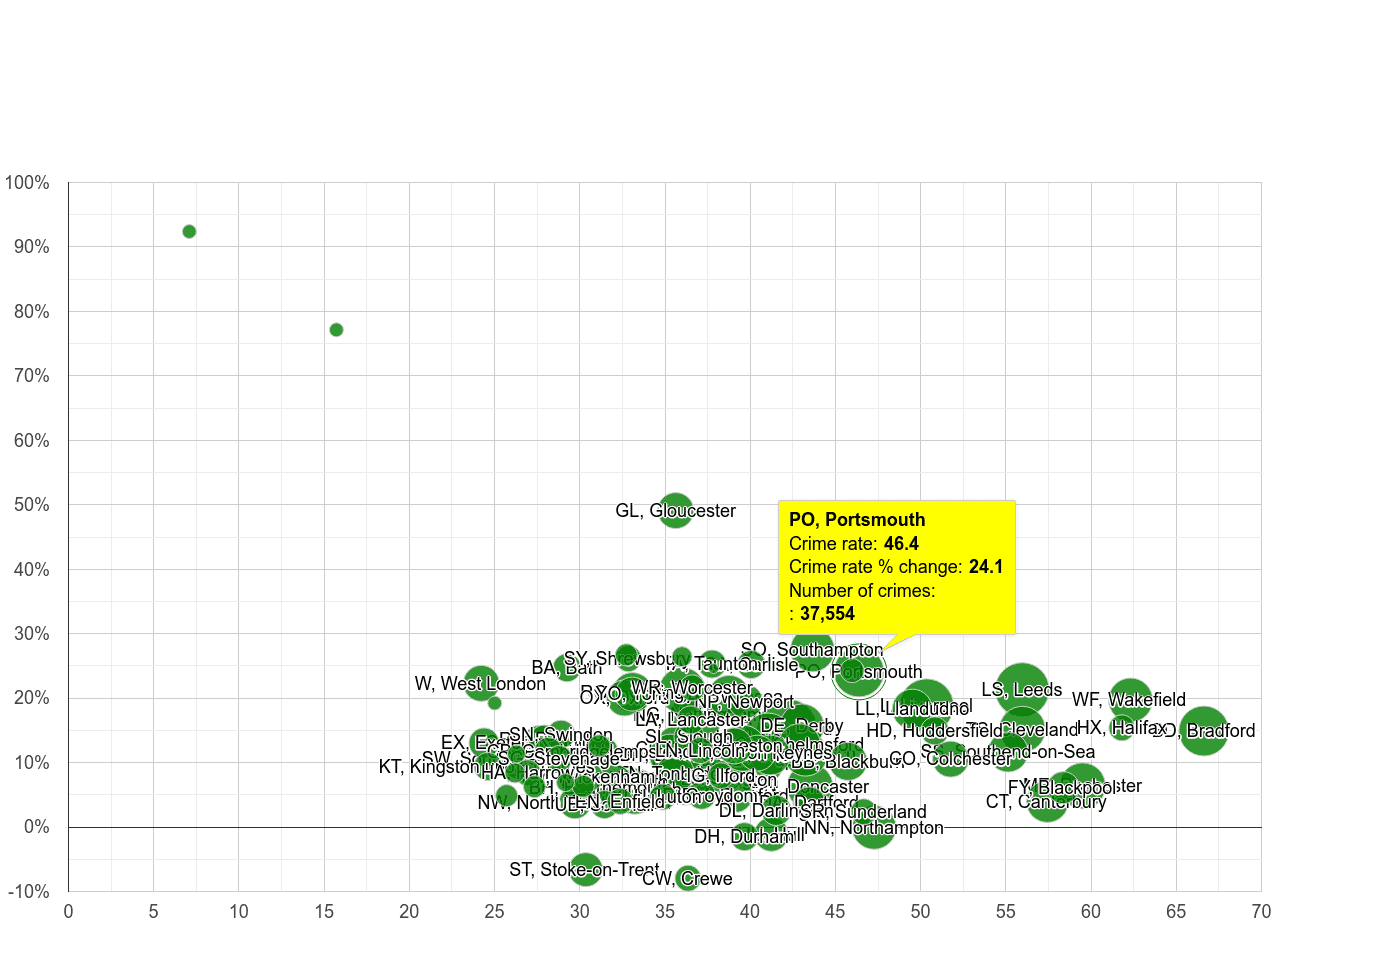 Portsmouth violent crime rate compared to other areas